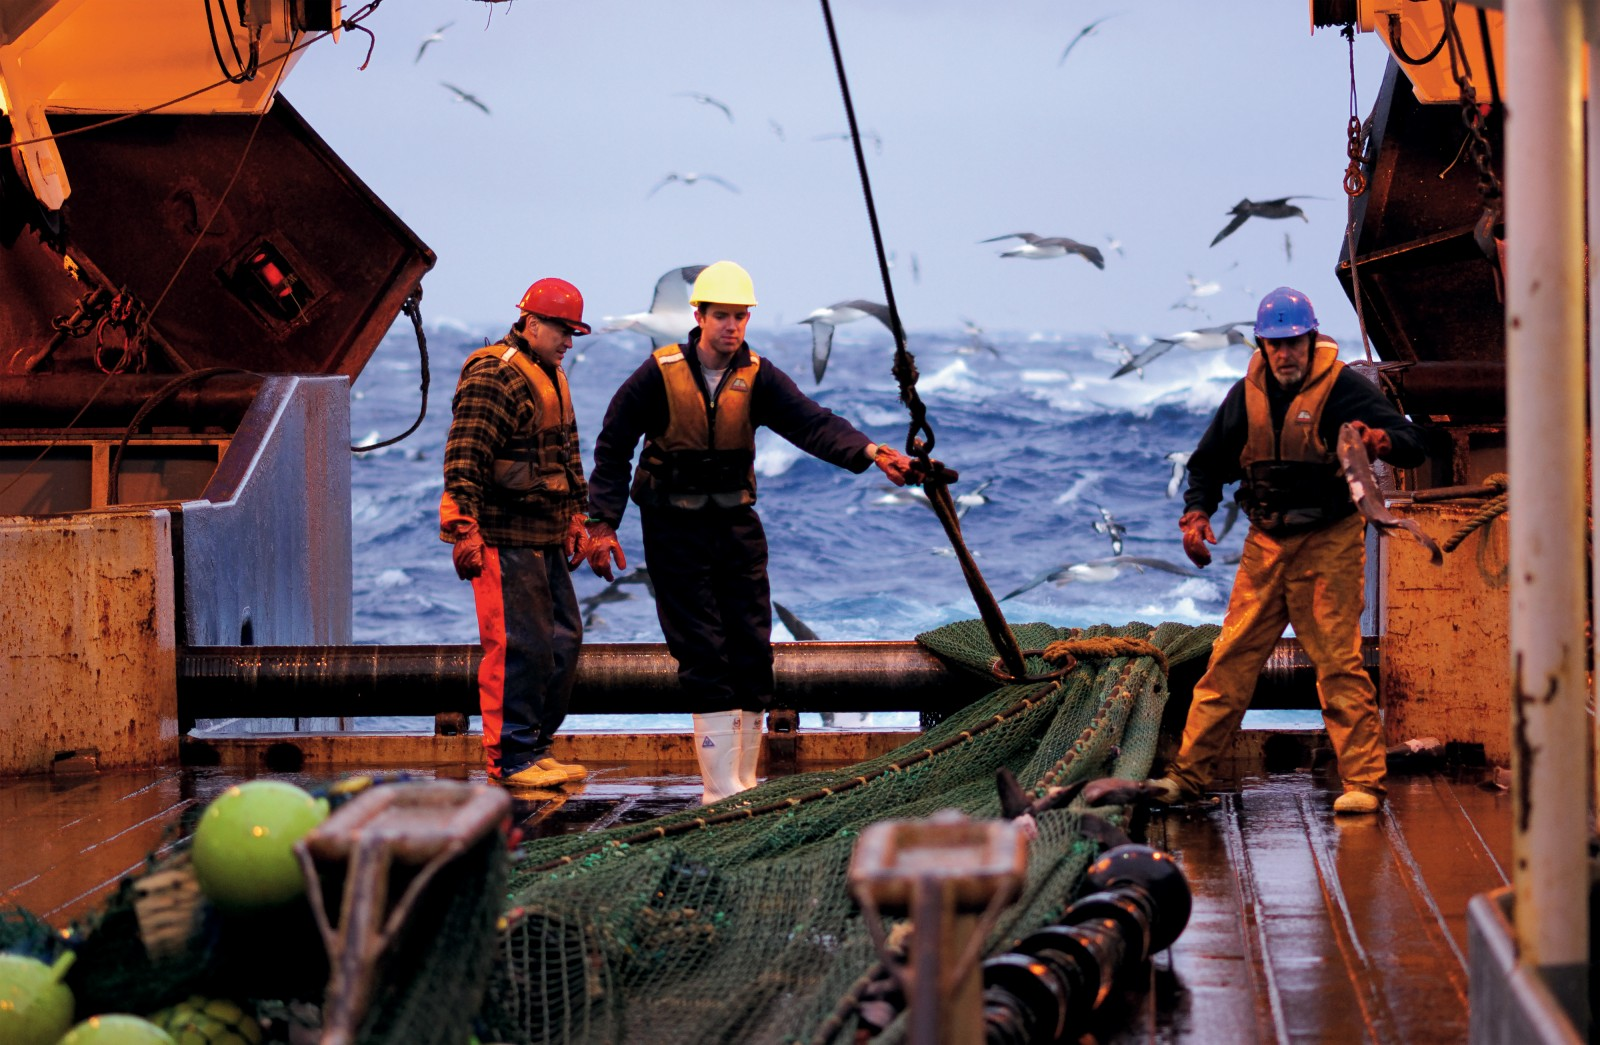 Anticipation runs high on the trawl deck as nets are hauled aboard, laden with residents of the deep. Equally eager for a taste of the action are the residents of the high seas; petrels, albatross and mollymawks flock to be first to the trawler's crumbs.